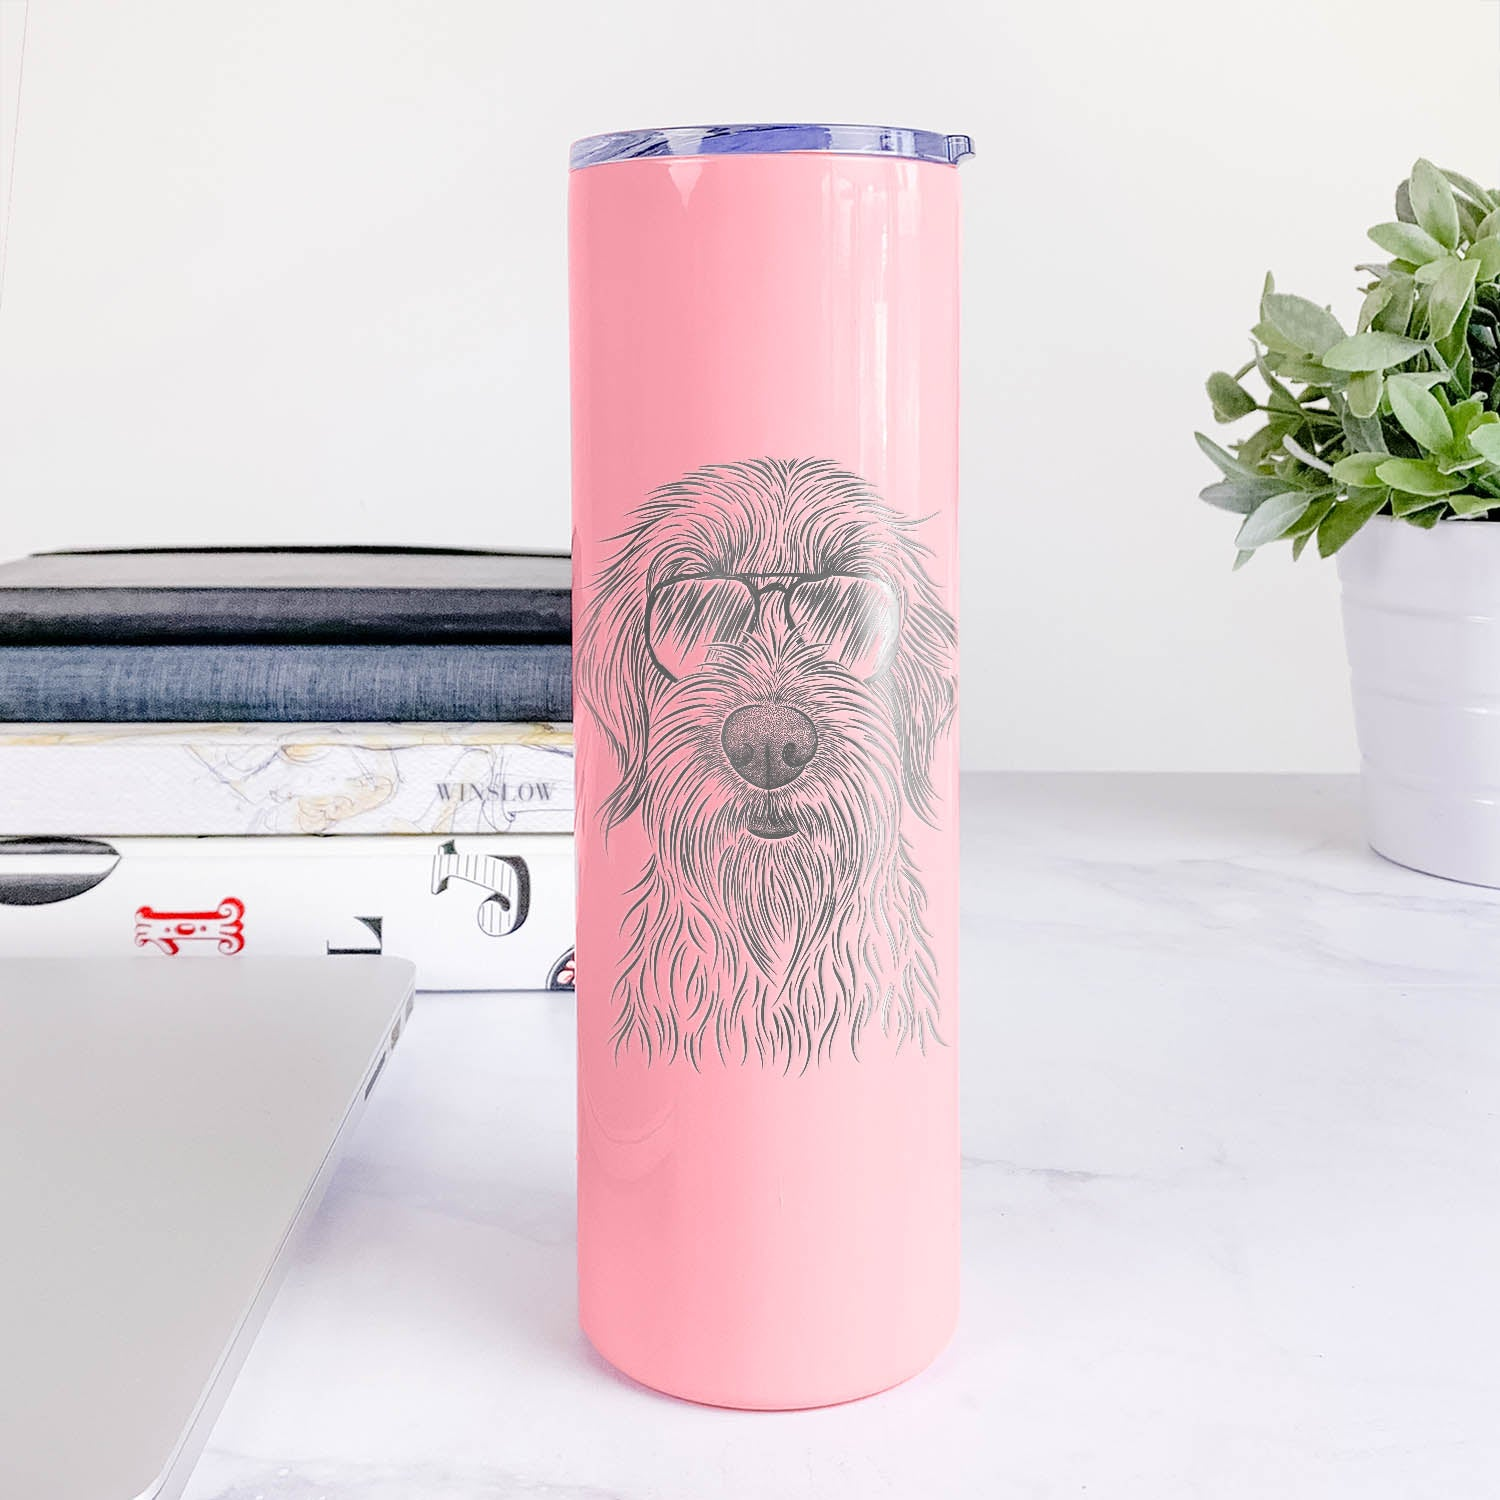 Wilkins the Wirehaired Pointing Griffon - 20oz Skinny Tumbler